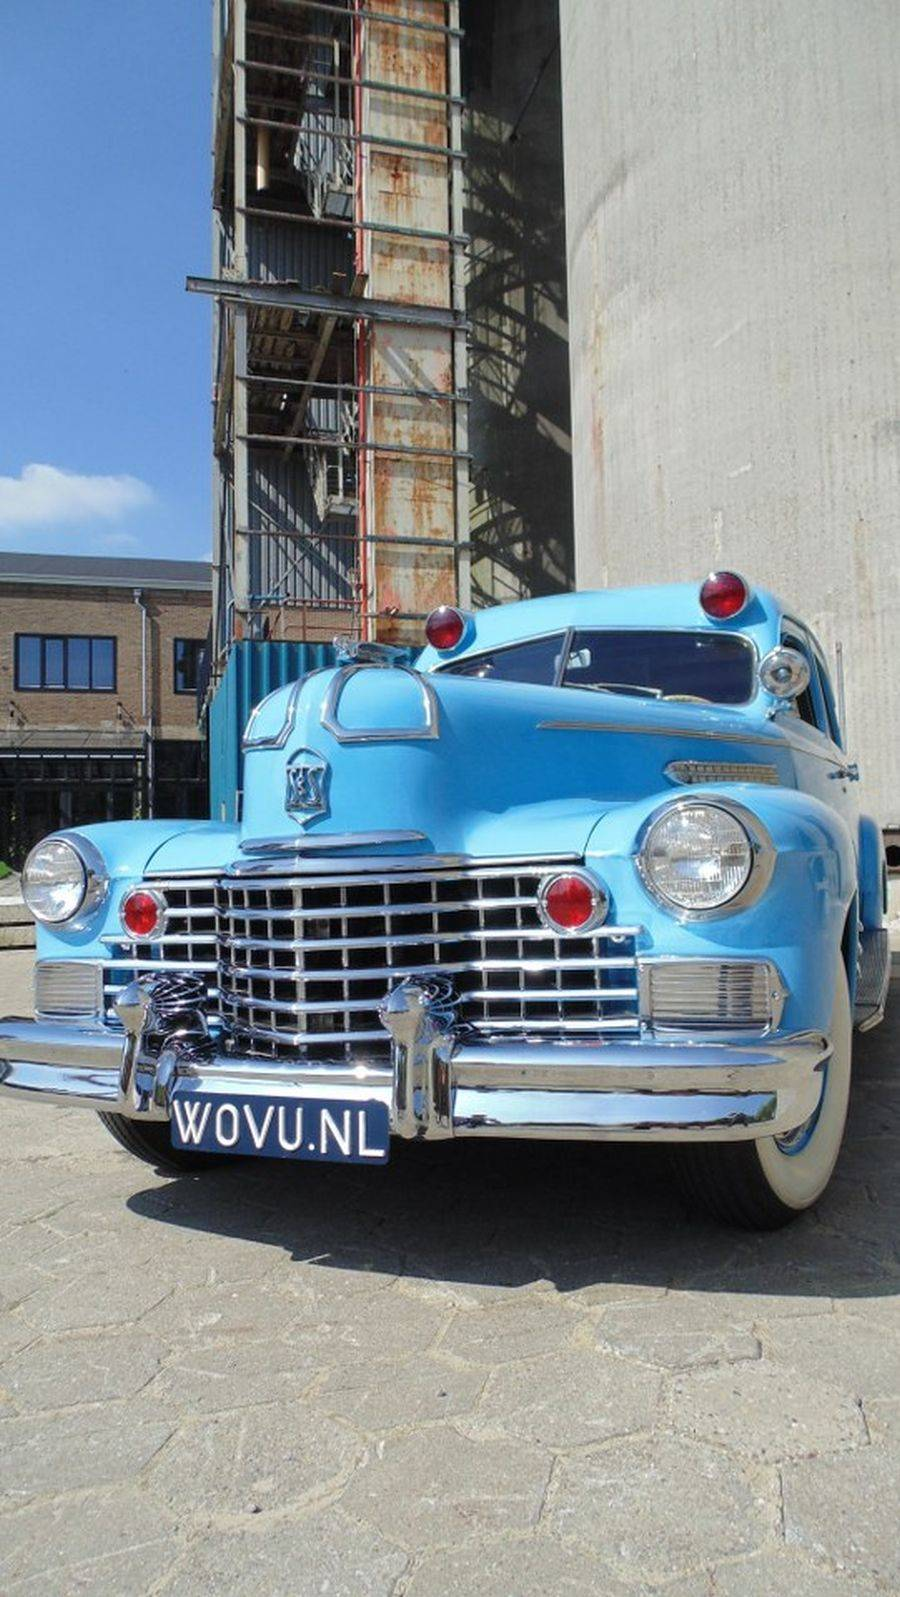 Cadillac S&S Ambulance (1942) for Sale - Classic Trader